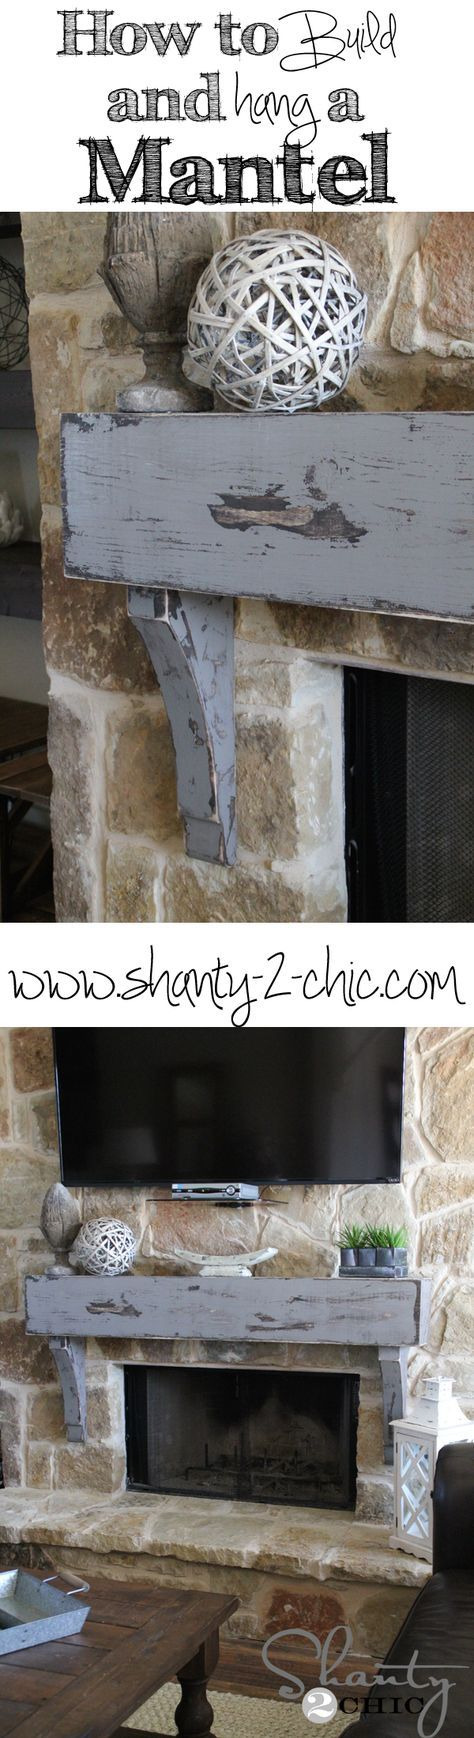 How to Build and Hang a Mantel on a Stone Fireplace Pinterest